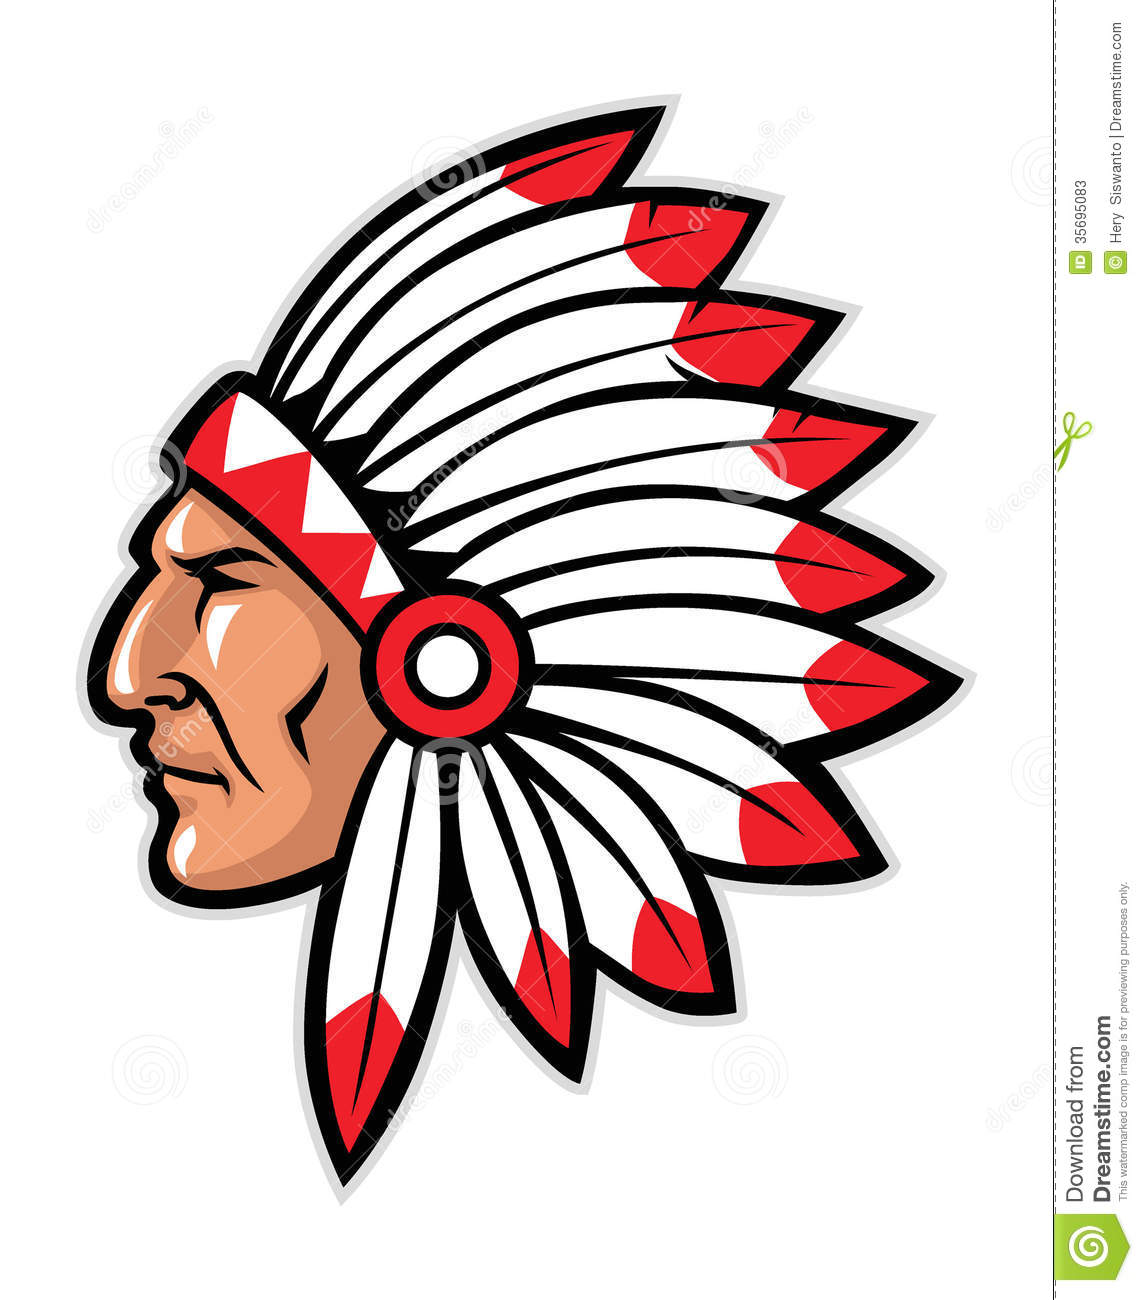 Clipart Indian Chief.